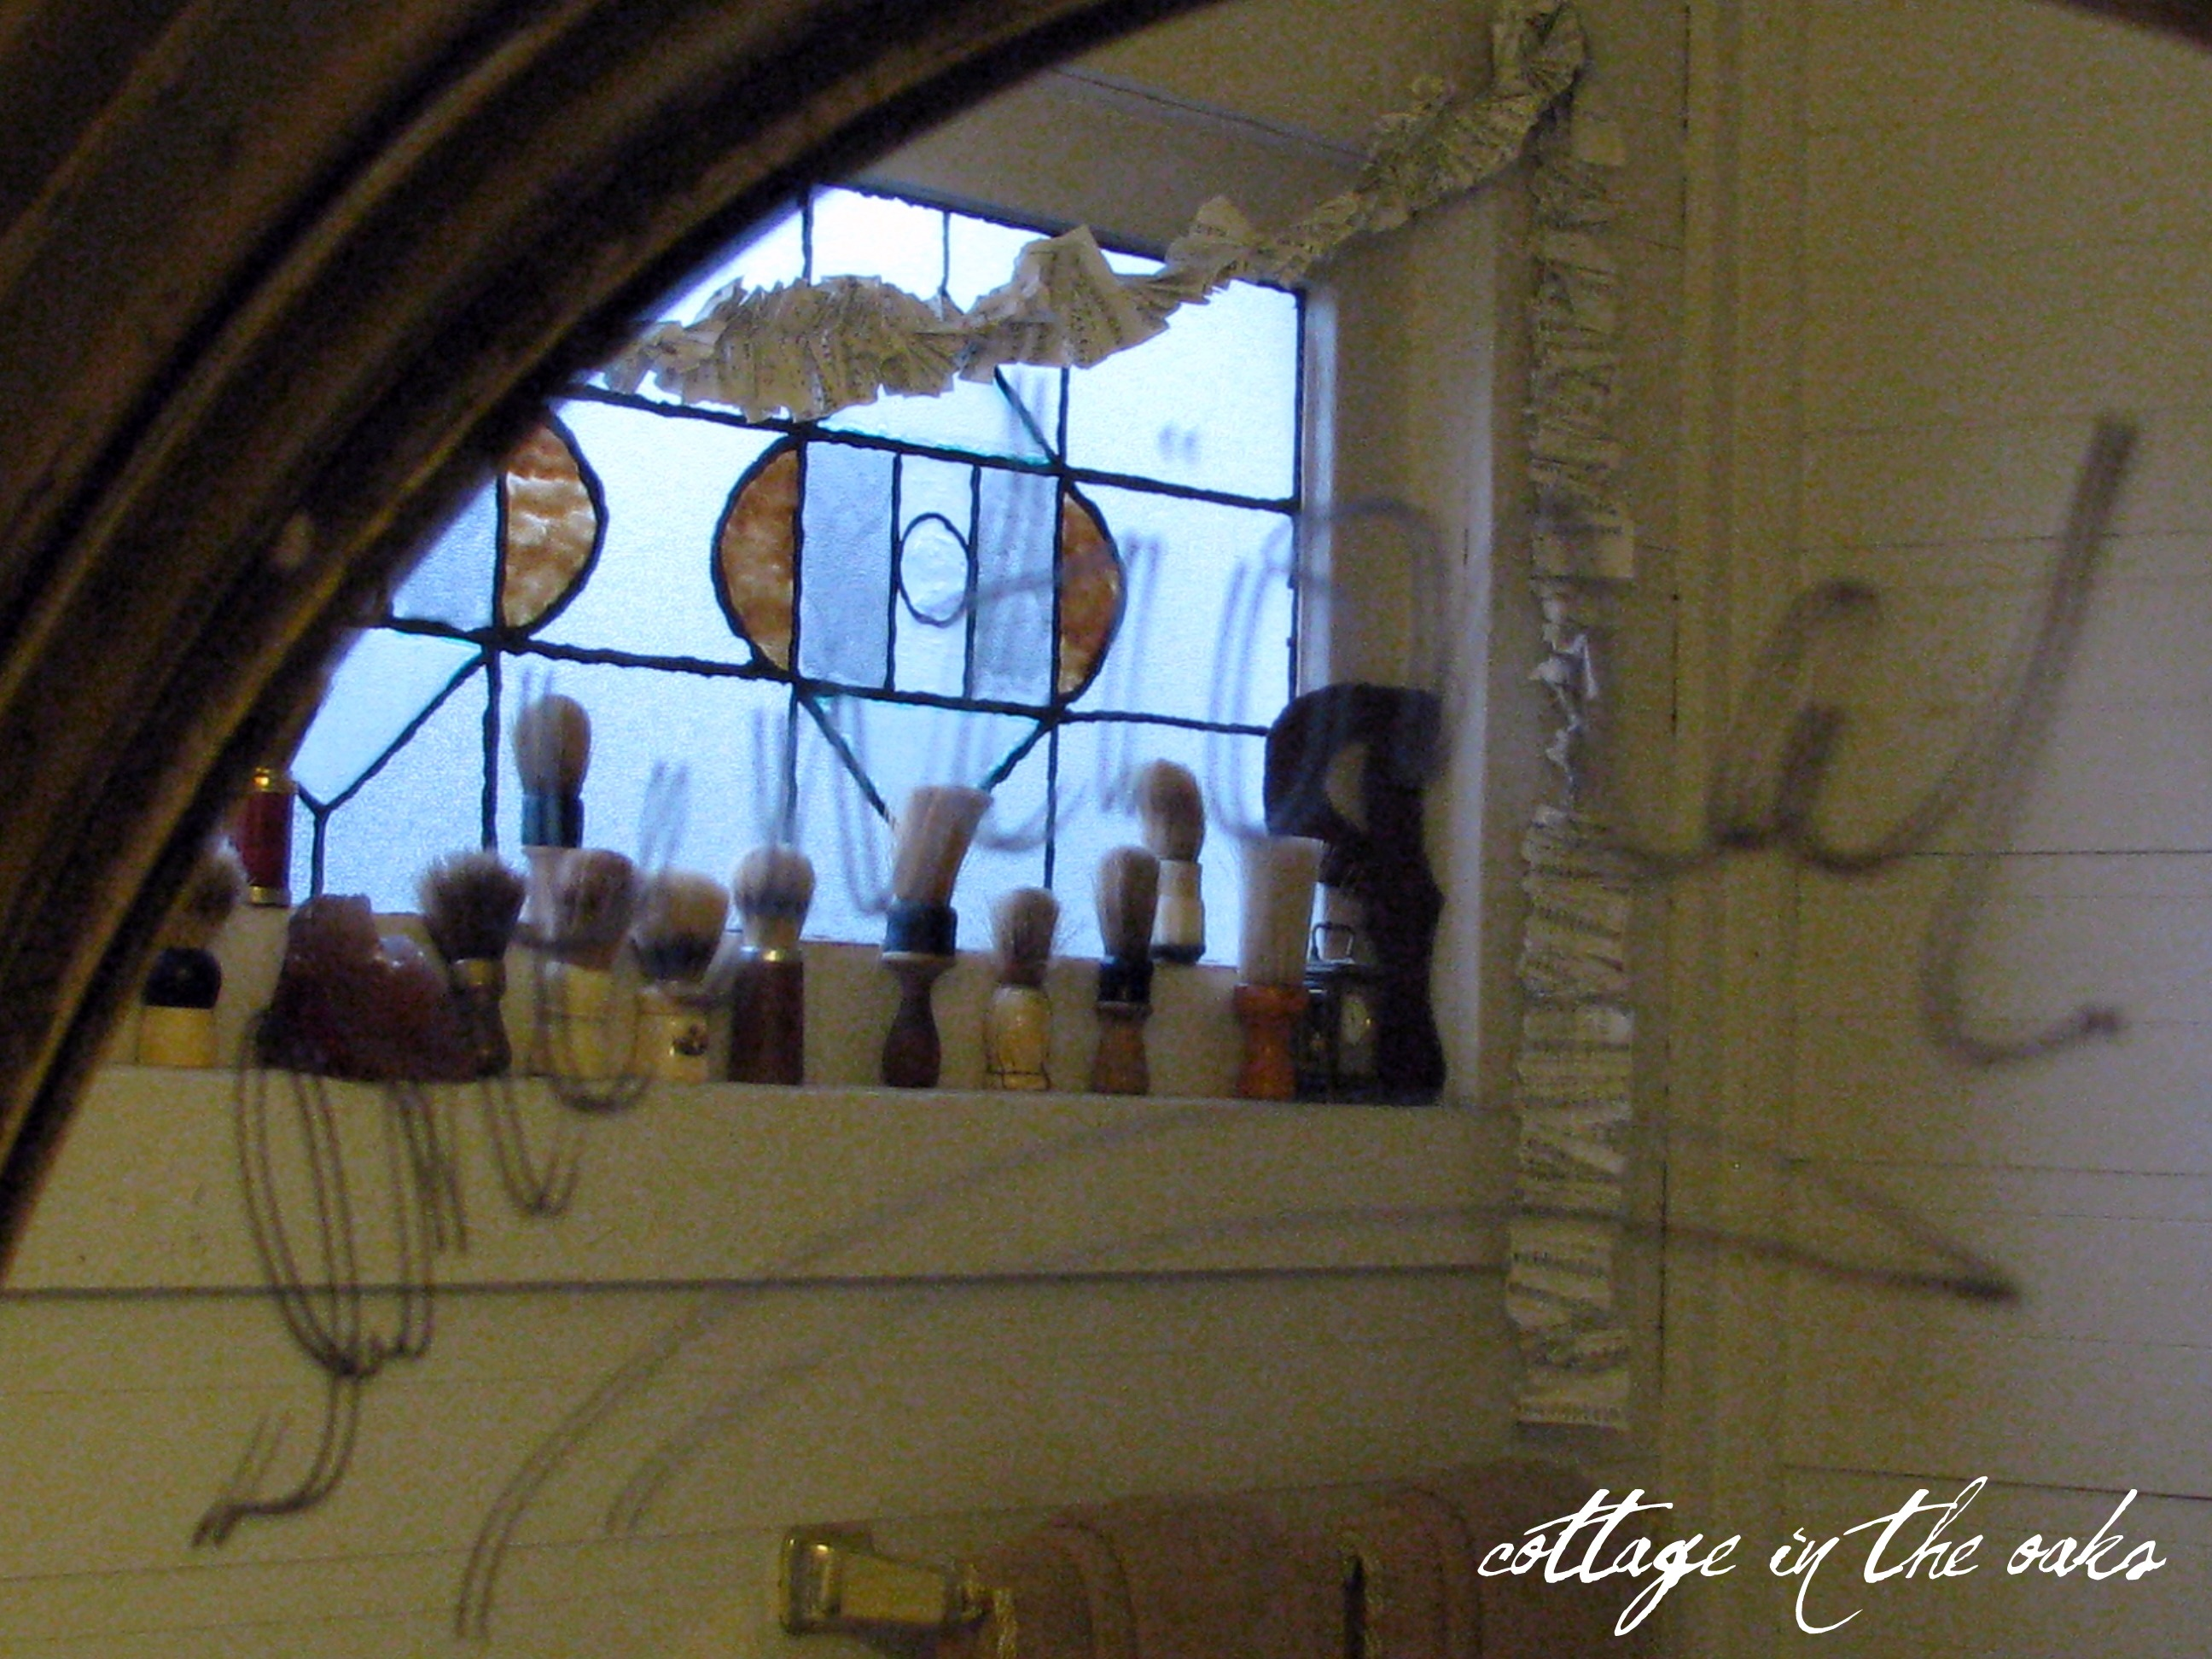 Bathroom Mirror Love Notes love notes on the bathroom mirror.. - cottage in the oaks